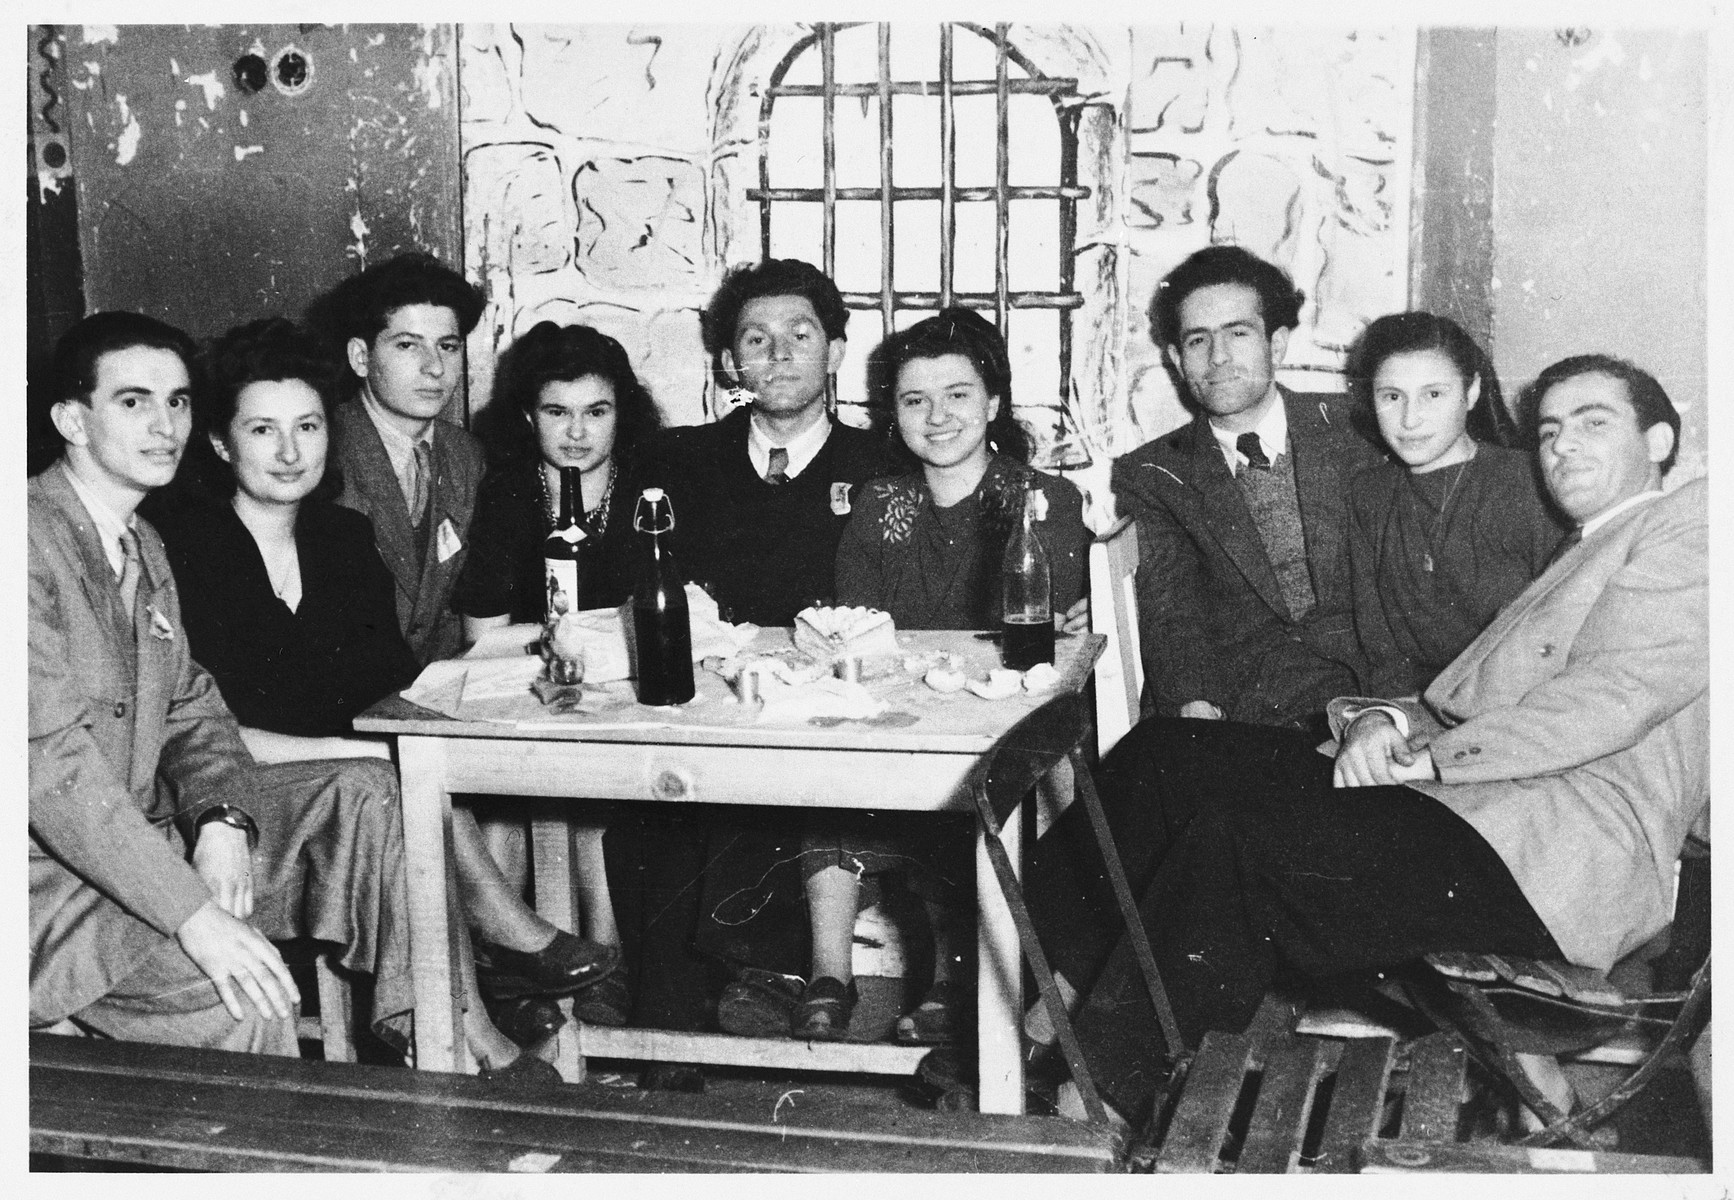 Jewish DP youth are gathered around a table with cake and wine in the Gabersee DP camp.  Among those pictured are David Wincygster (third from the right), Helen Spielman (fourth from the left), and her brother Arthur Spielman (far left).